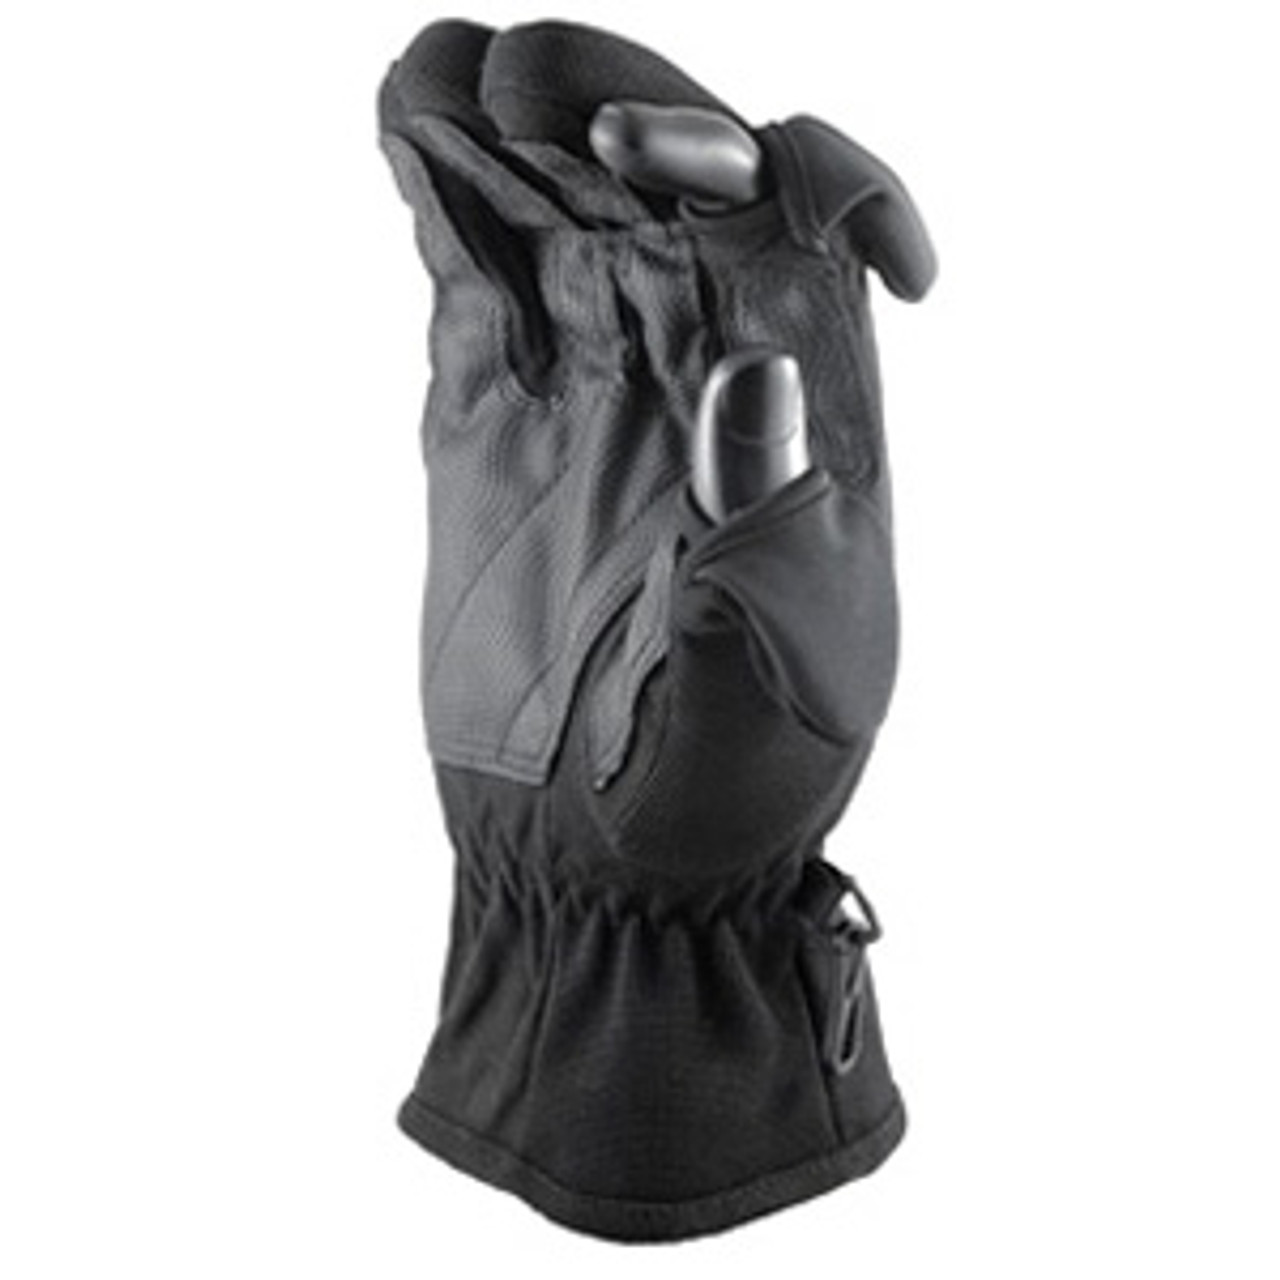 Optex Freehands Photo Gloves - Ladies (Small)